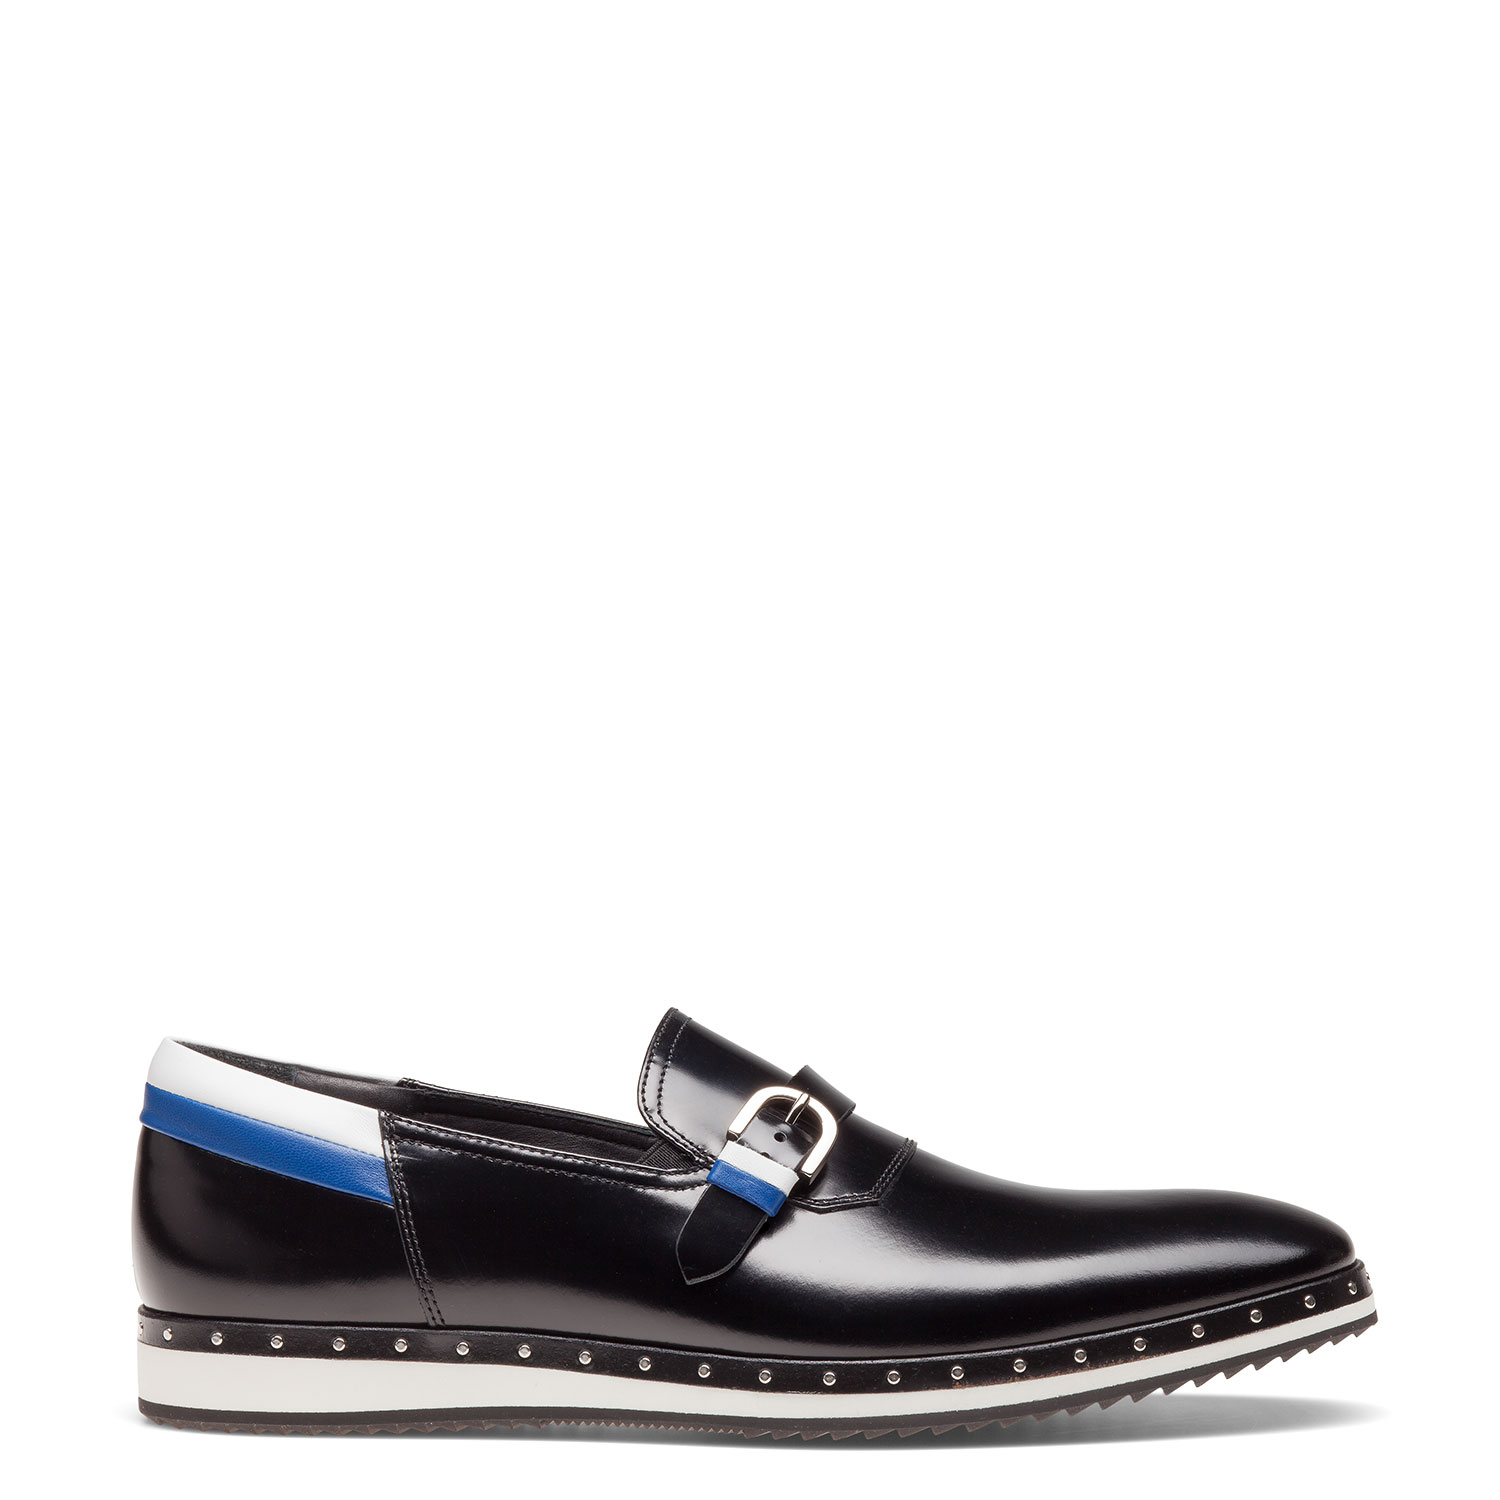 Men's shoes CARLO PAZOLINI GD-BLE1-1